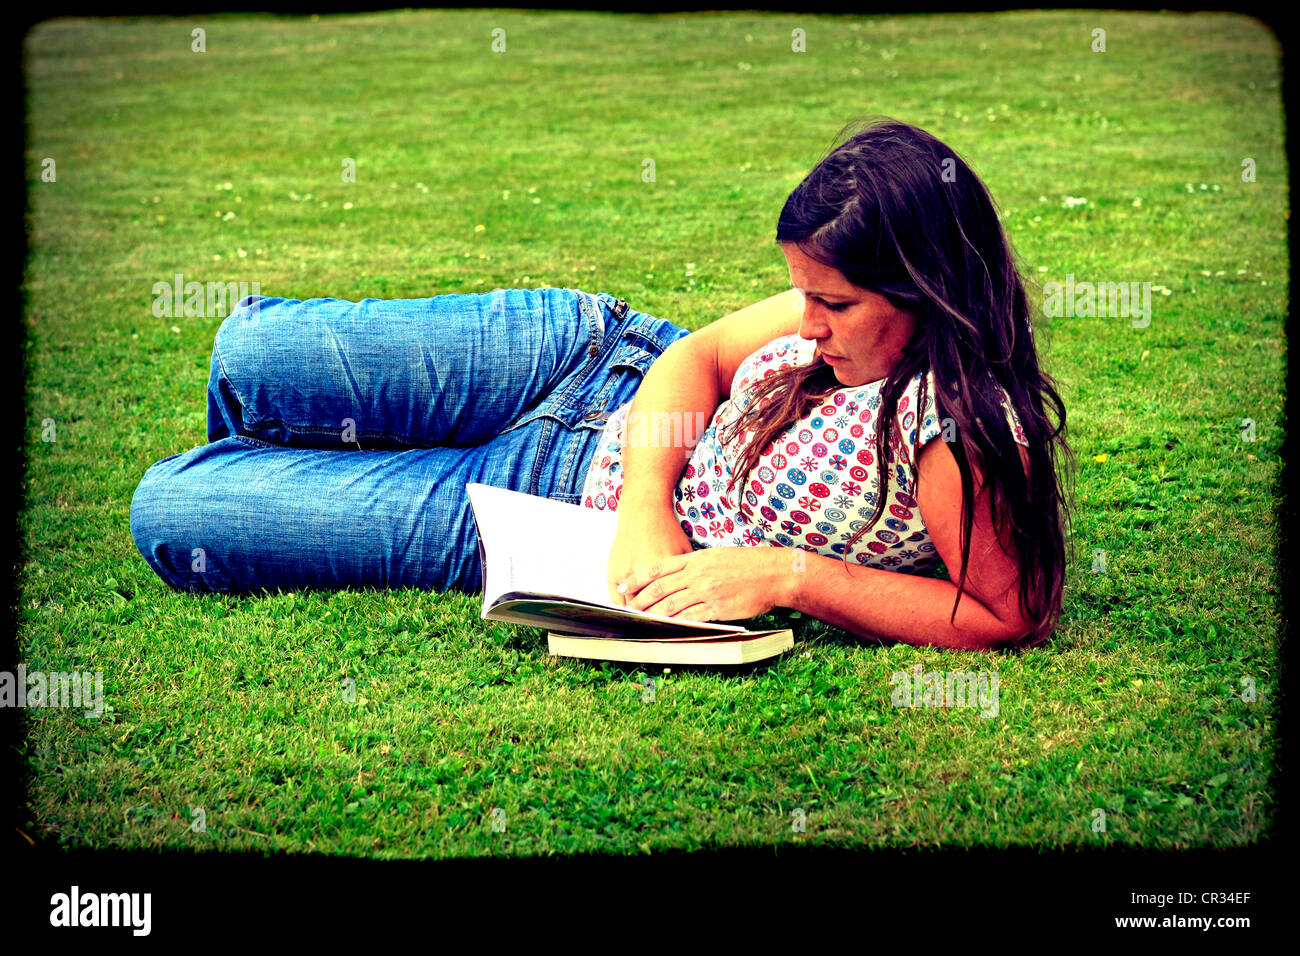 Instagram sytle image of an adult female enjoys reading on a summers day on the grass in the park - Stock Image